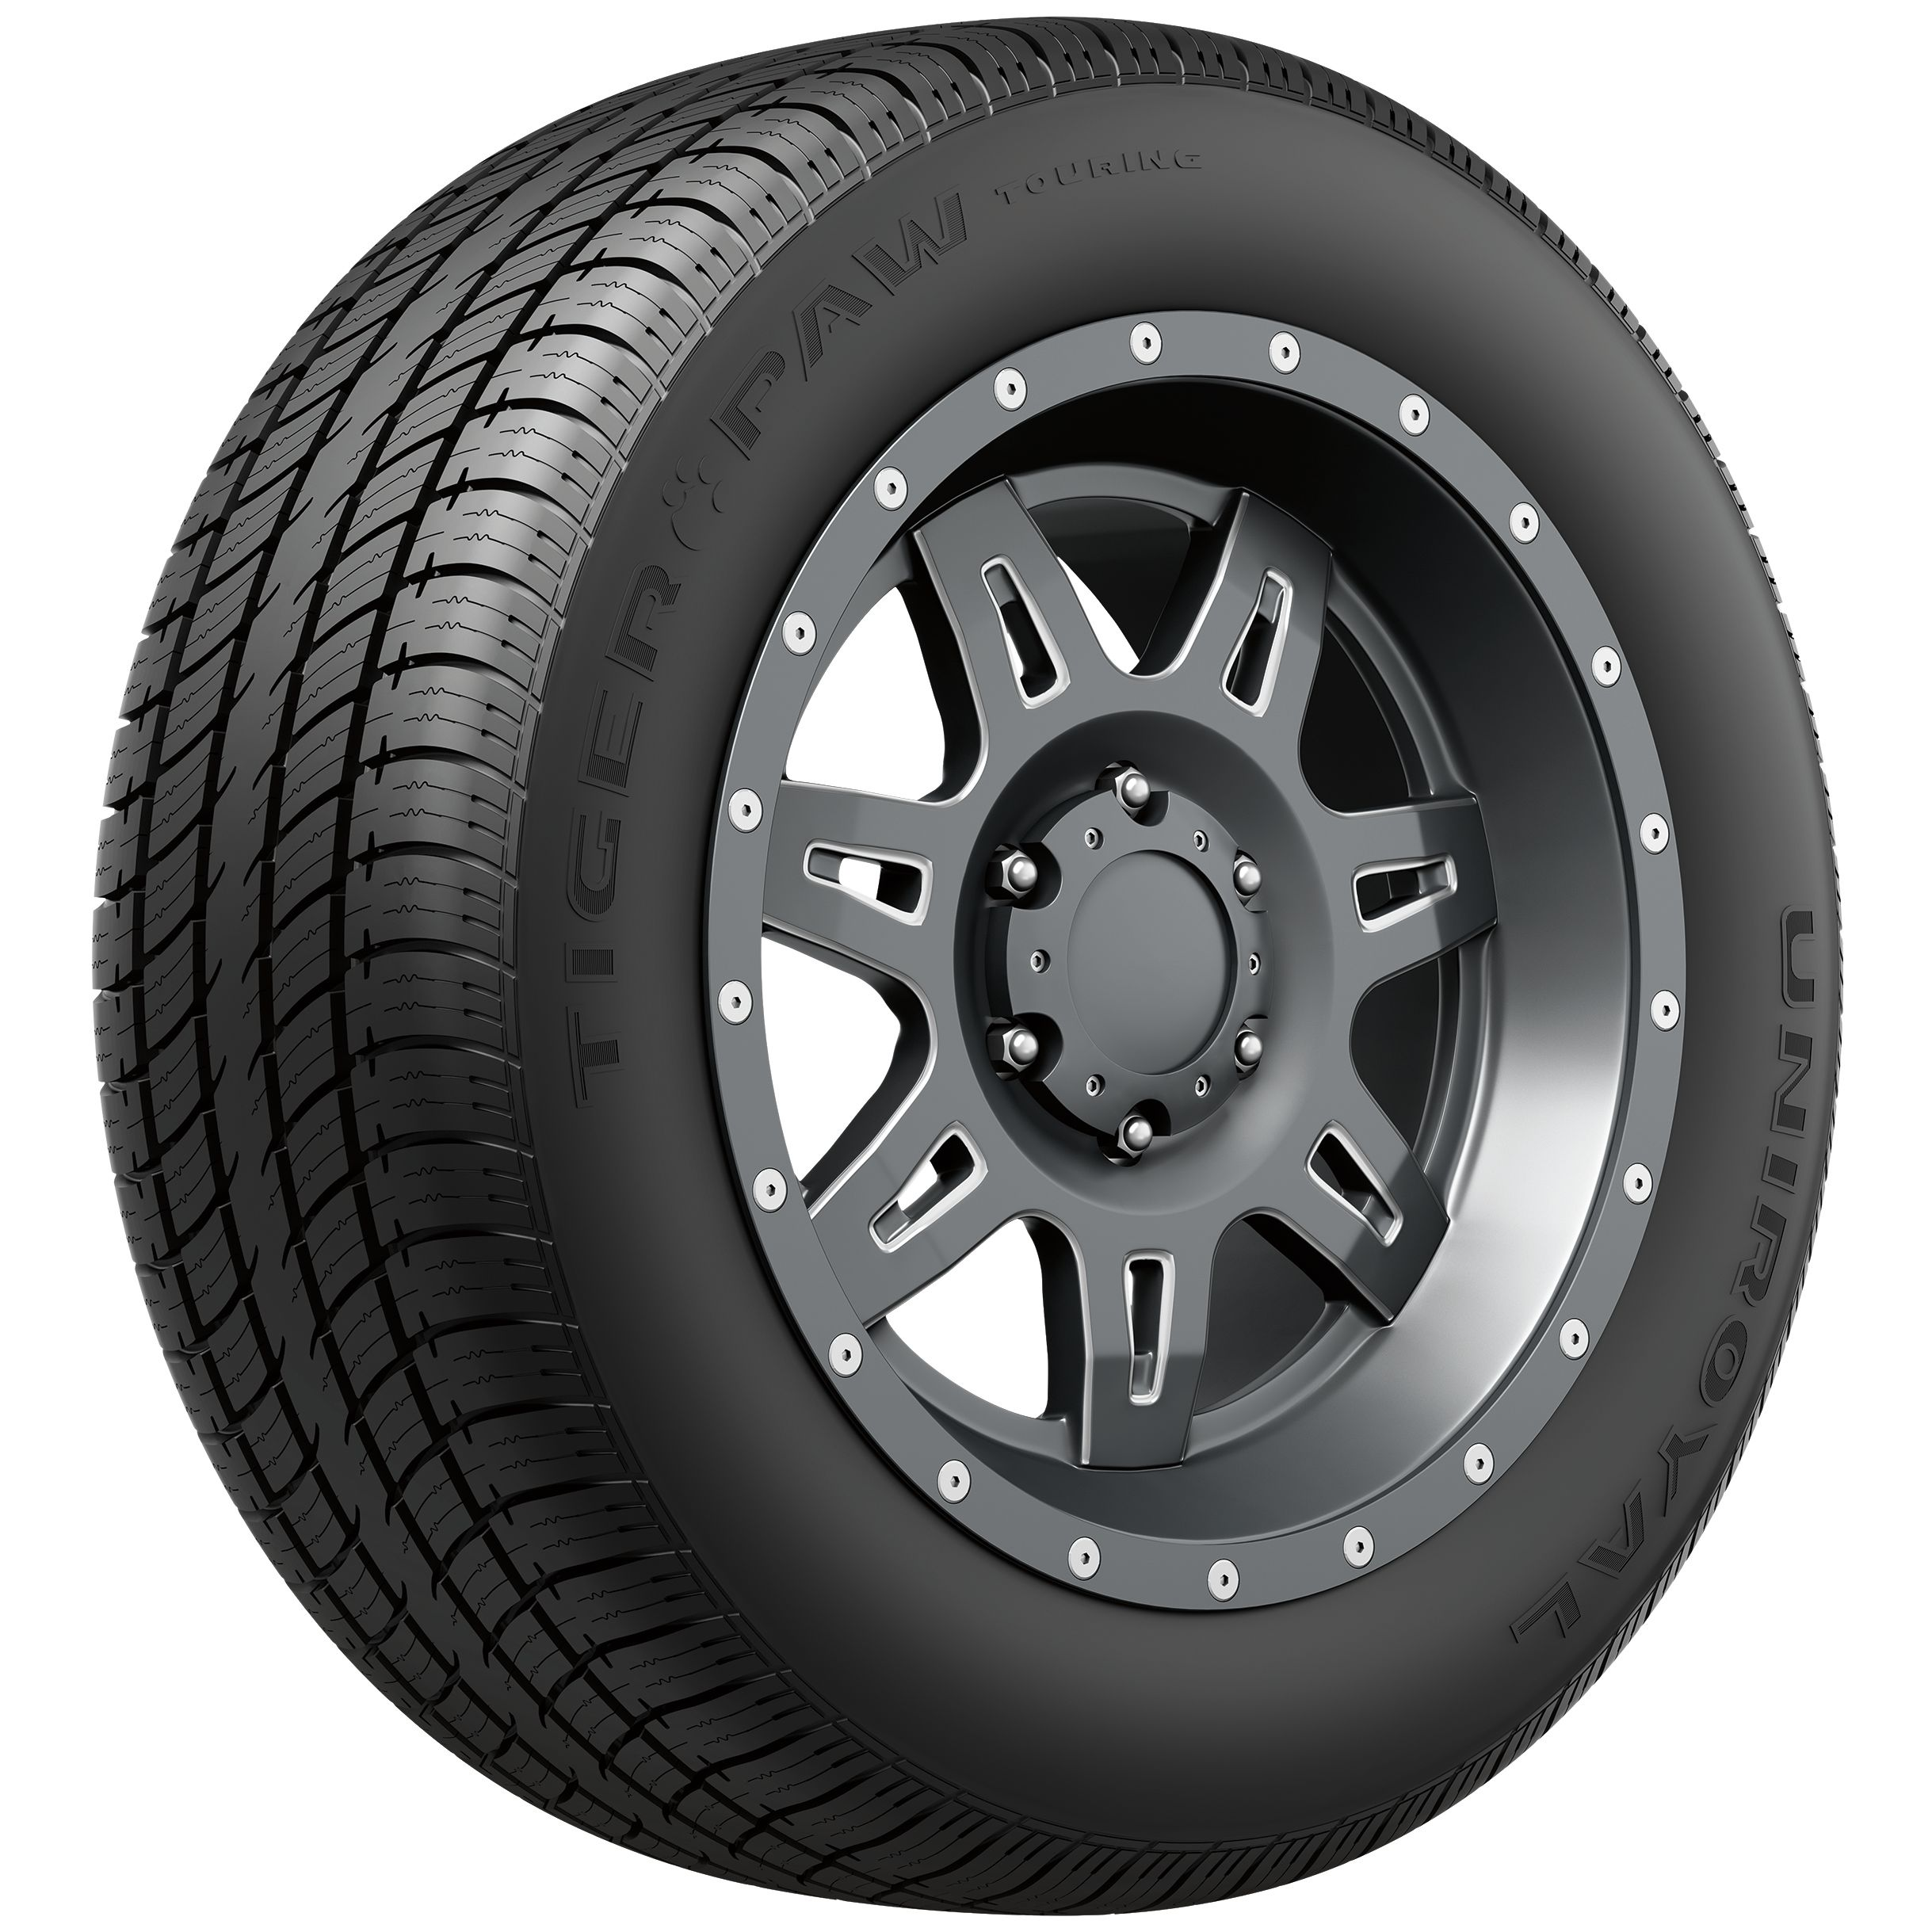 Uniroyal Tiger Paw Touring Highway Tire 225/65R17 102T